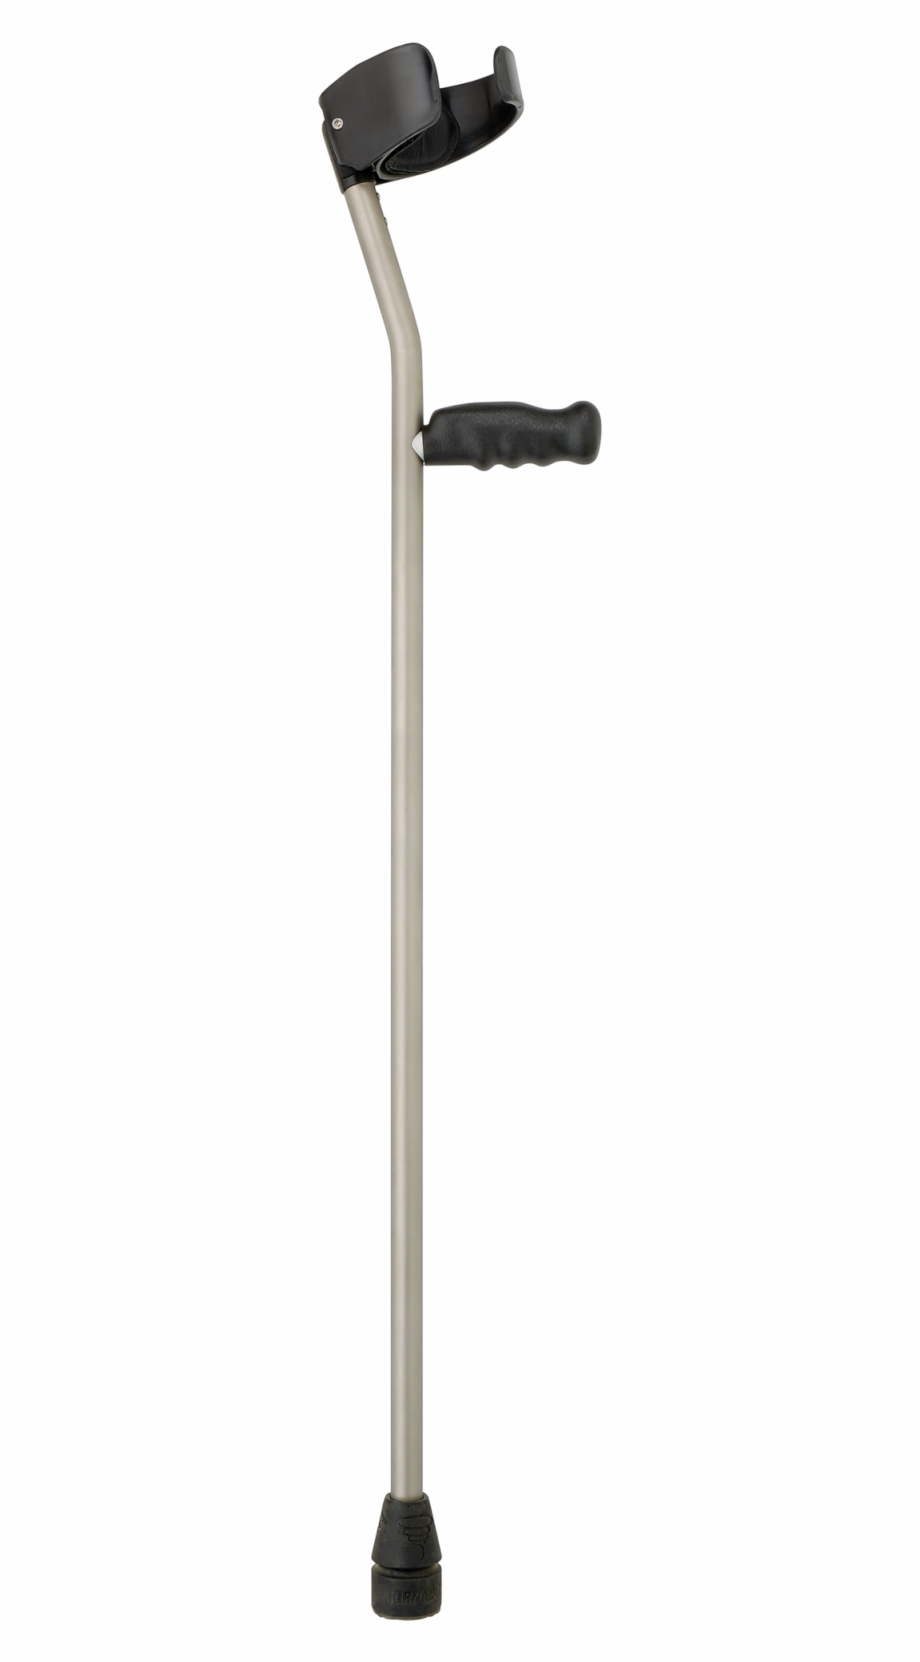 Crutches Png, Download Png Image With Transparent Background.